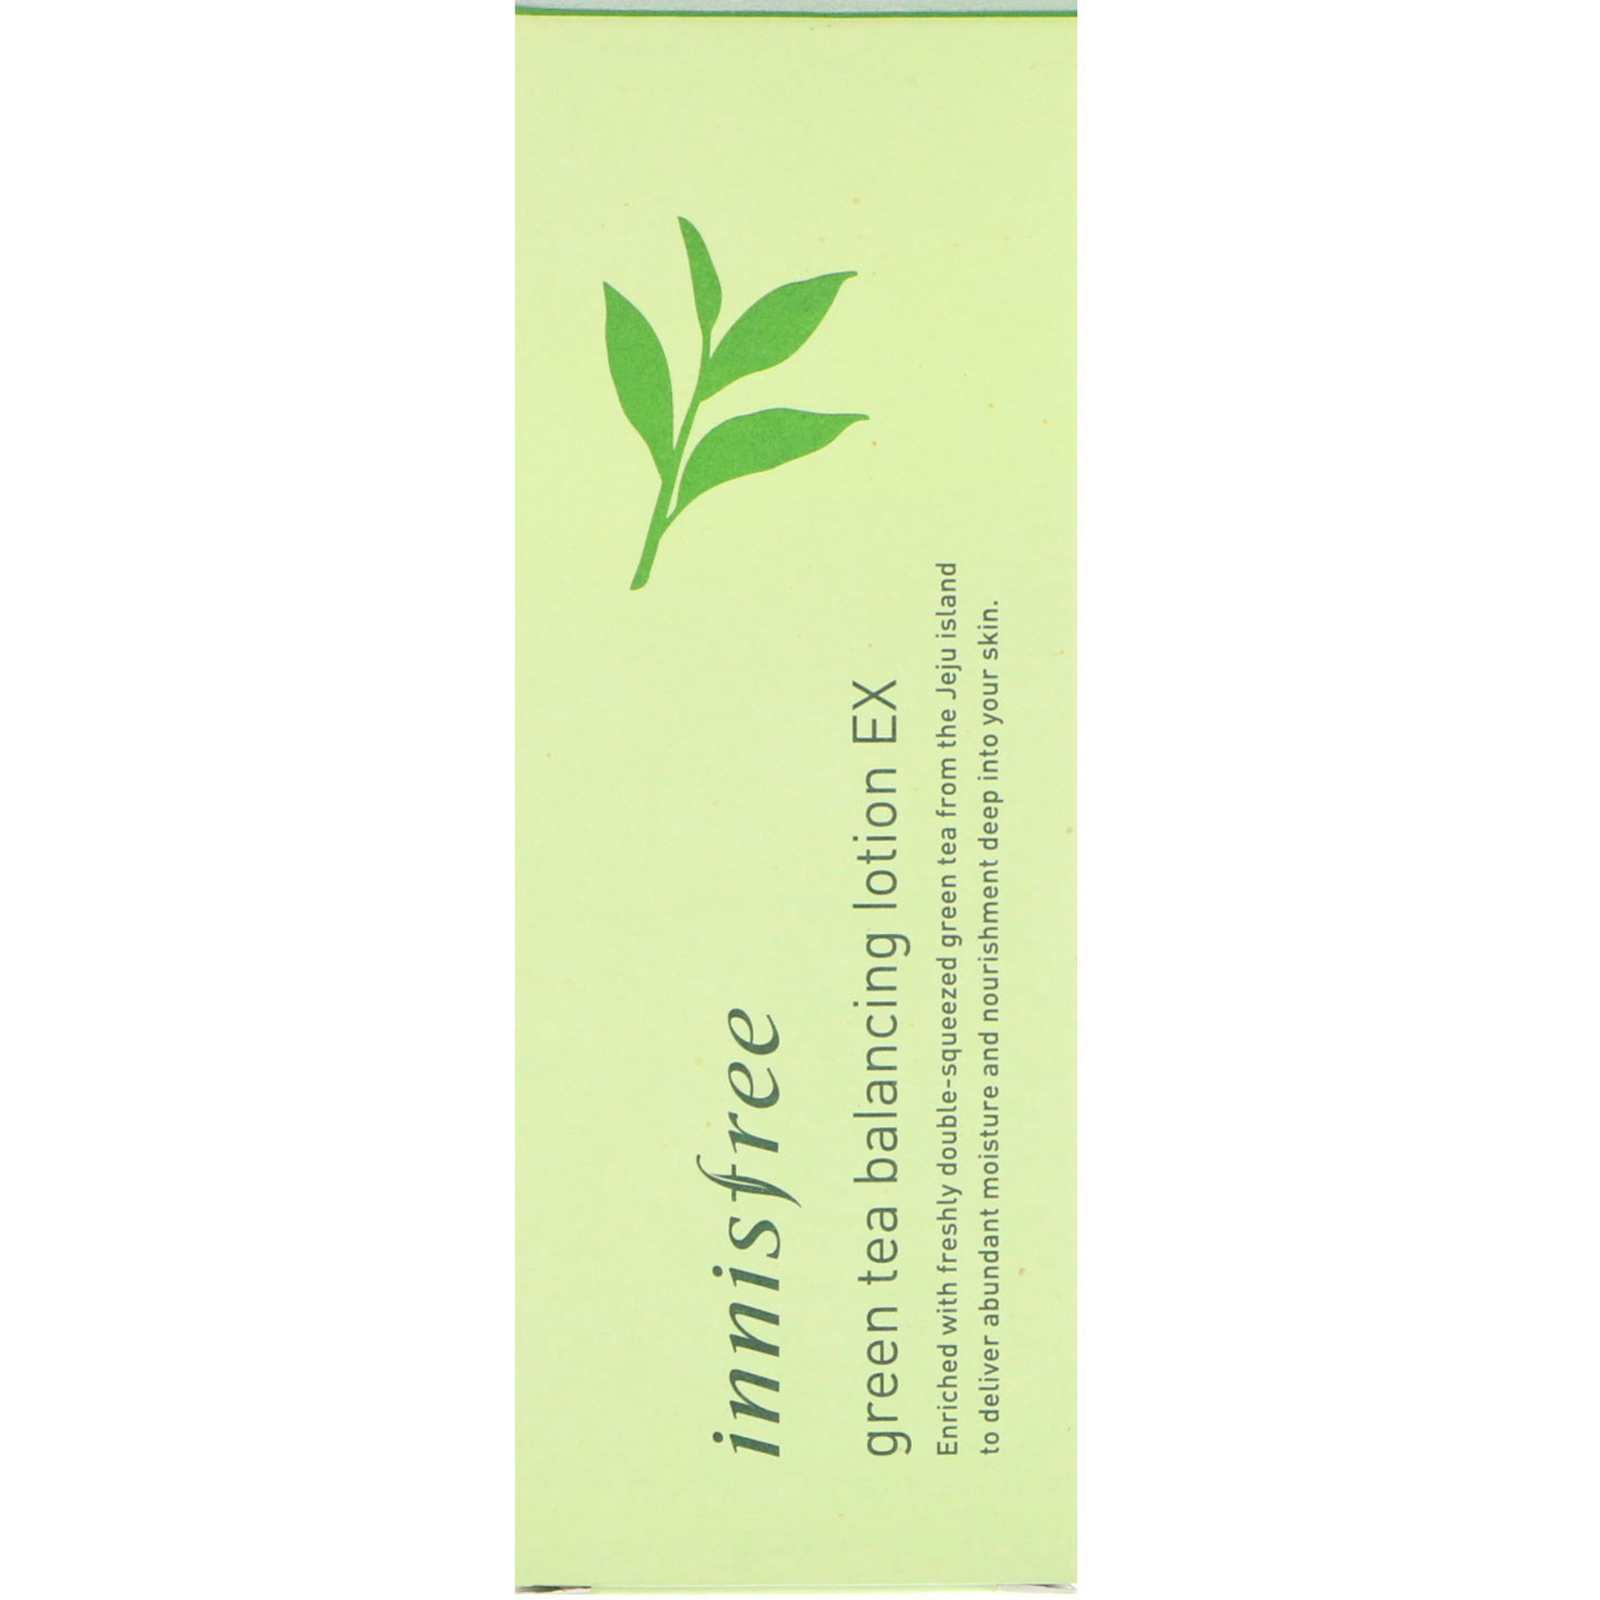 Innisfree Green Tea Balancing Lotion Ex 160 Ml Special Kit 4 Items